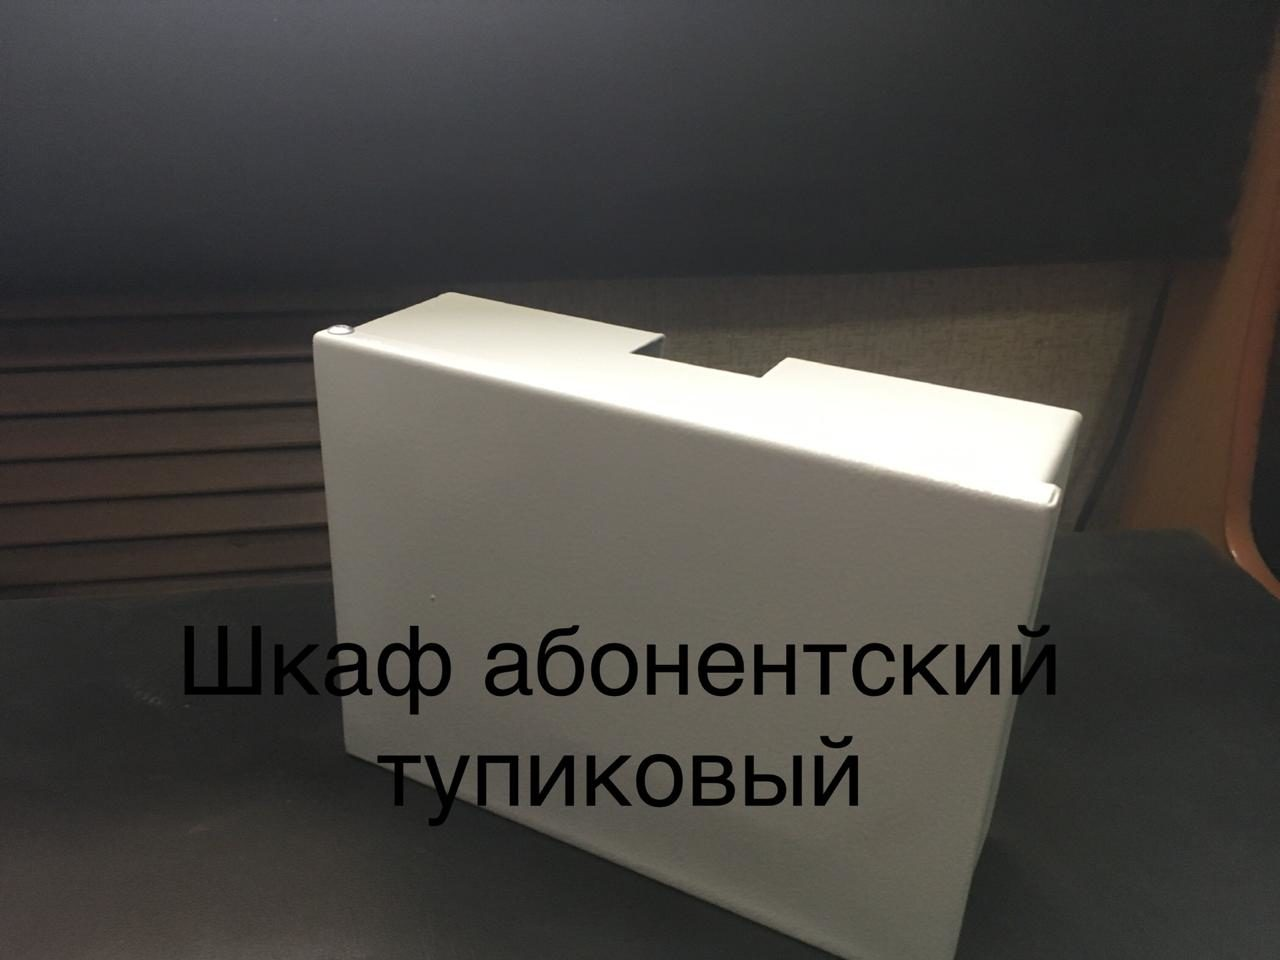 https://energomakc.ru/wp-content/uploads/2019/10/WhatsApp-Image-2019-10-24-at-23.14.36-1280x960.jpeg